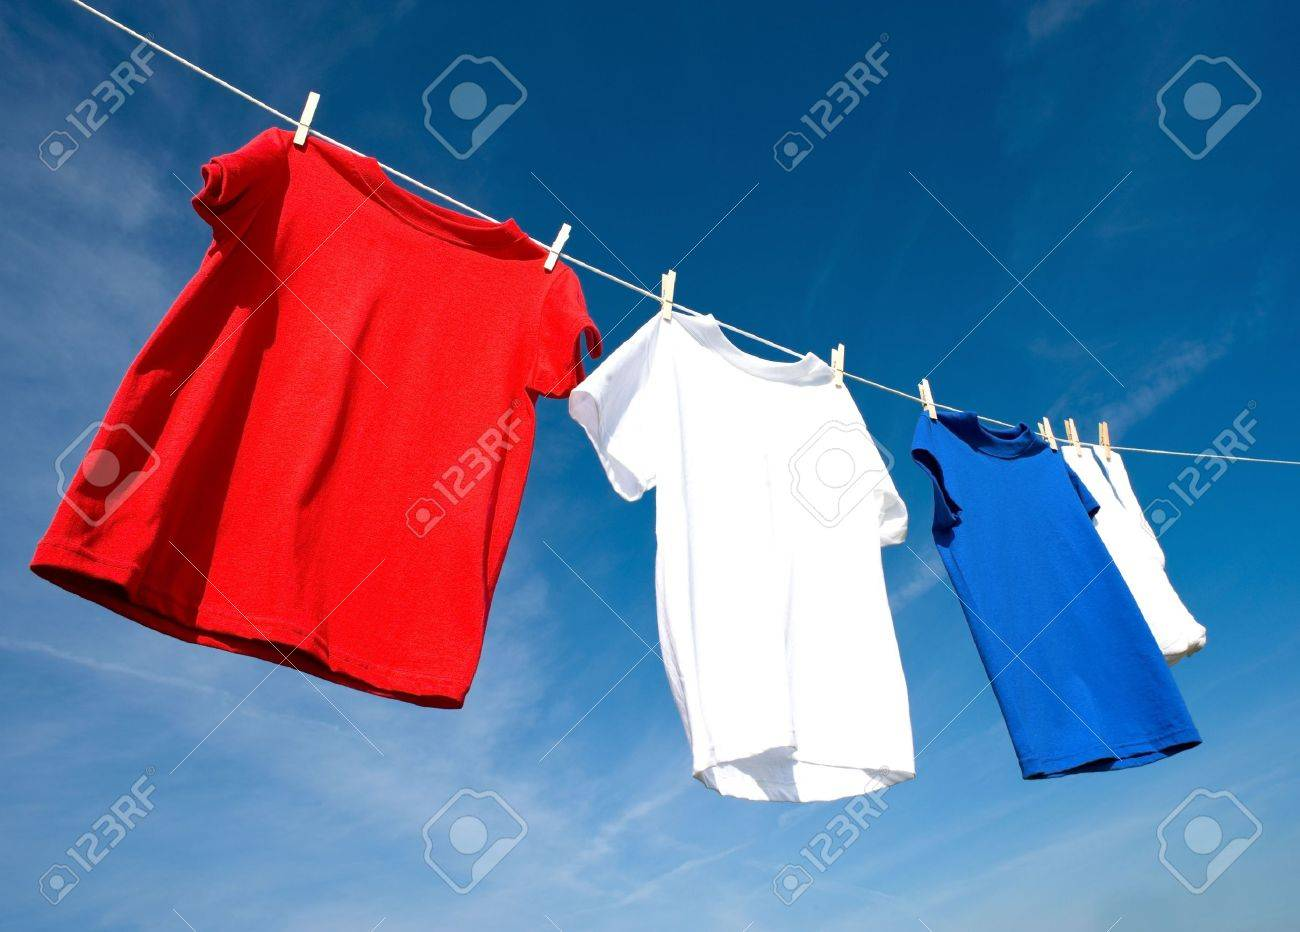 a set of red, white and blue T-shirts hanging on a clothesline on a beautiful, sunny day, add text or graphic to shirts or copy space.  Independance day or USA theme. Stock Photo - 4725789